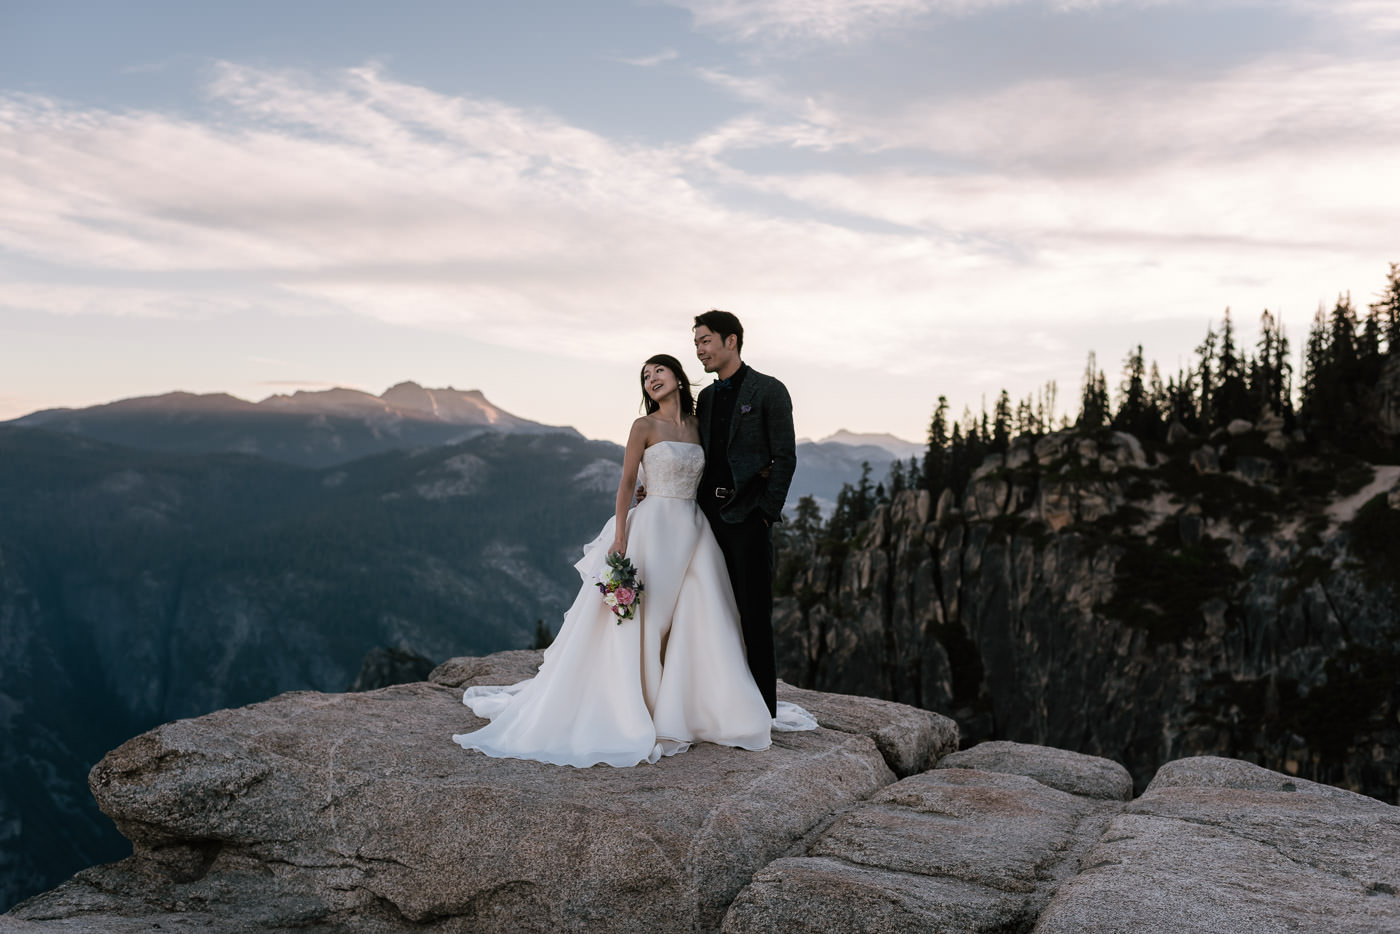 Best national park wedding photographers in the United States.